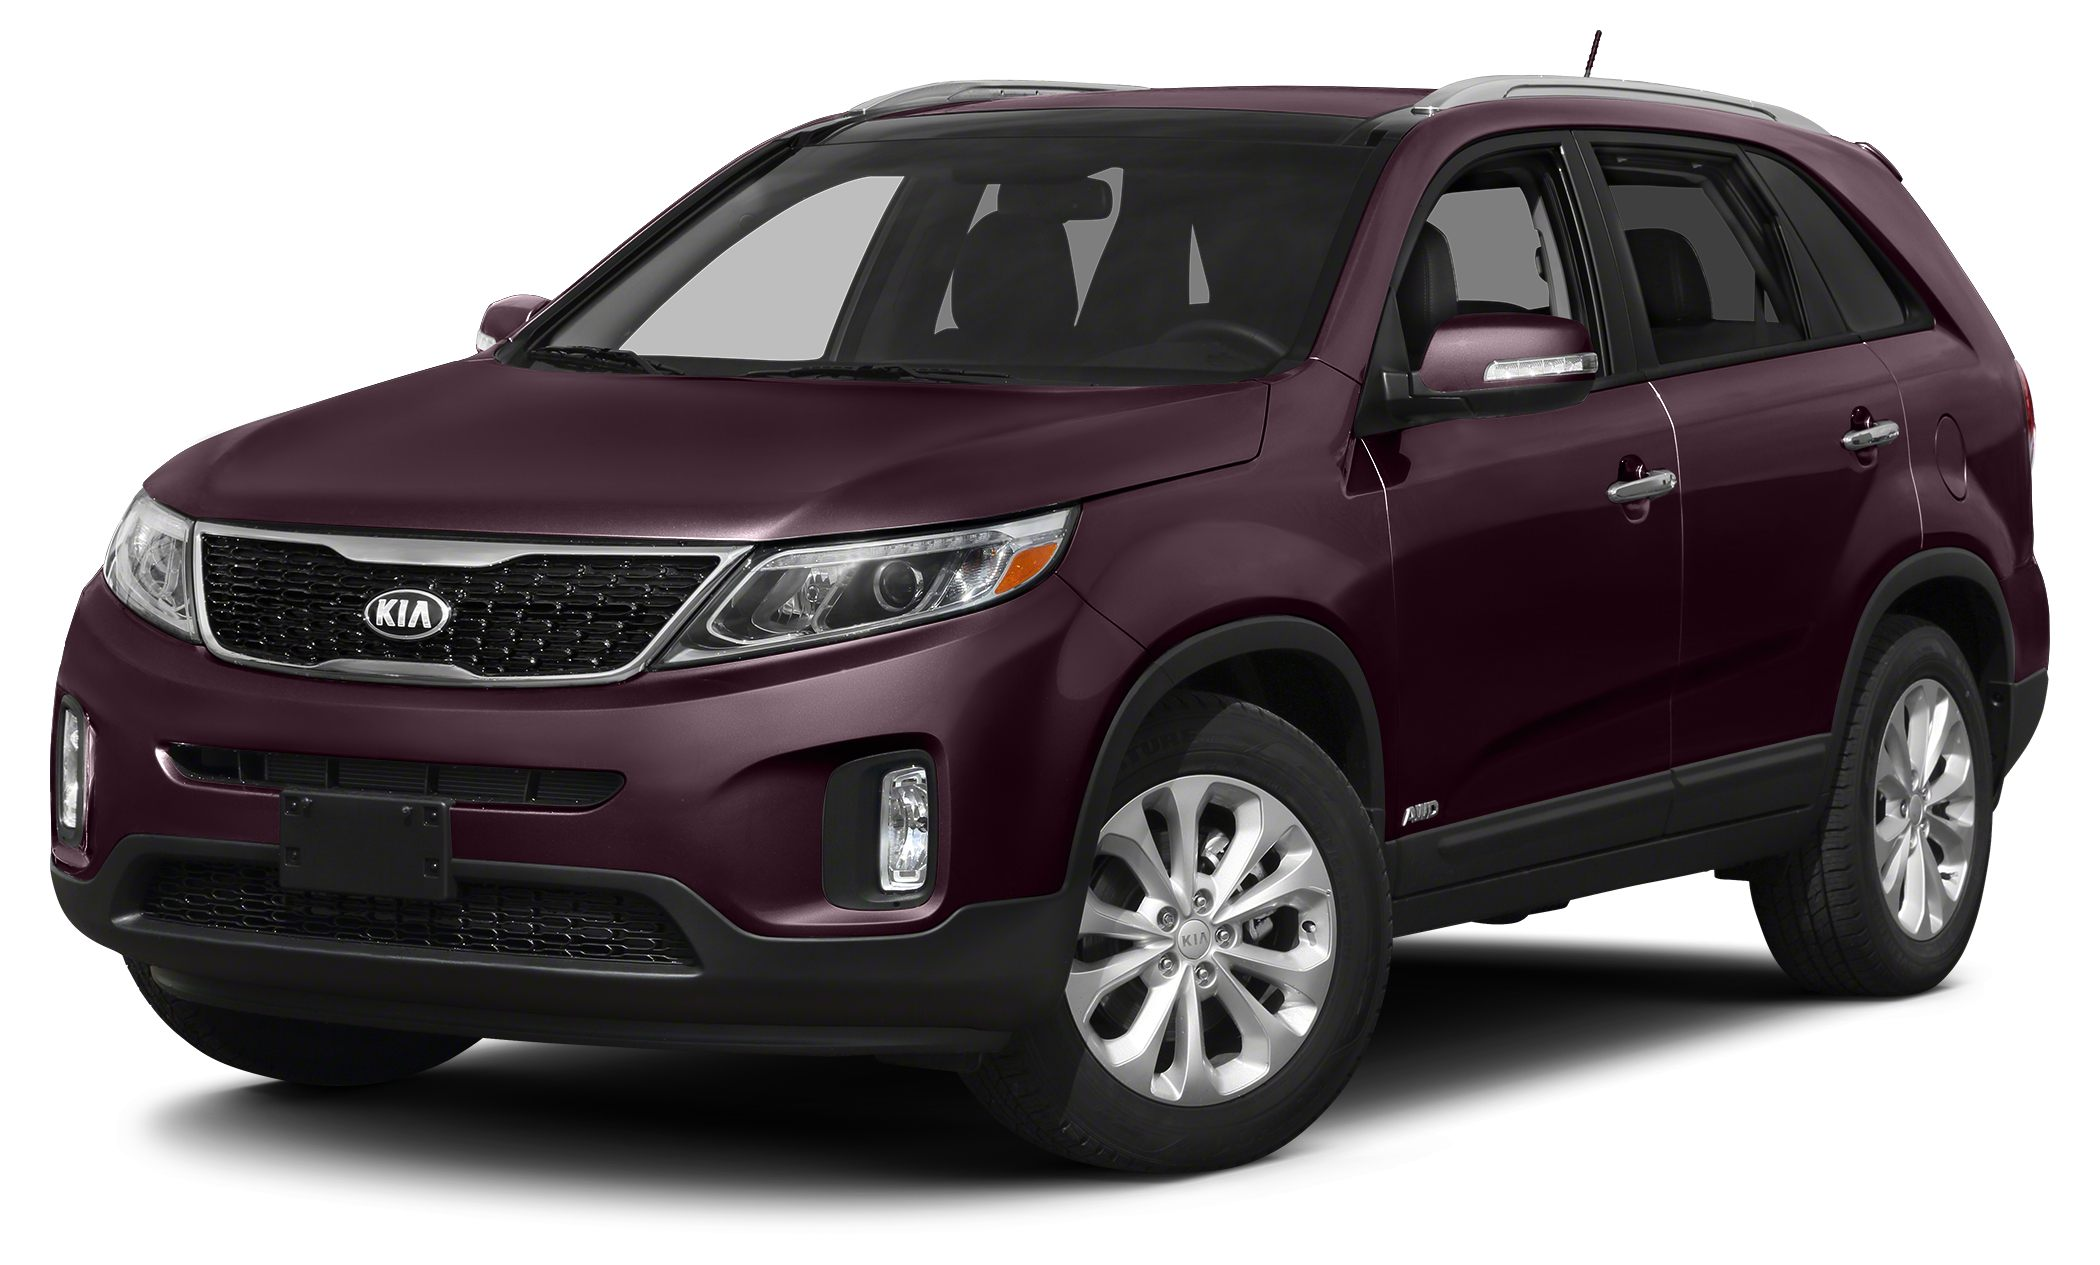 2014 Kia Sorento LX Grab a score on this 2014 Kia Sorento LX before someone else snatches it Room